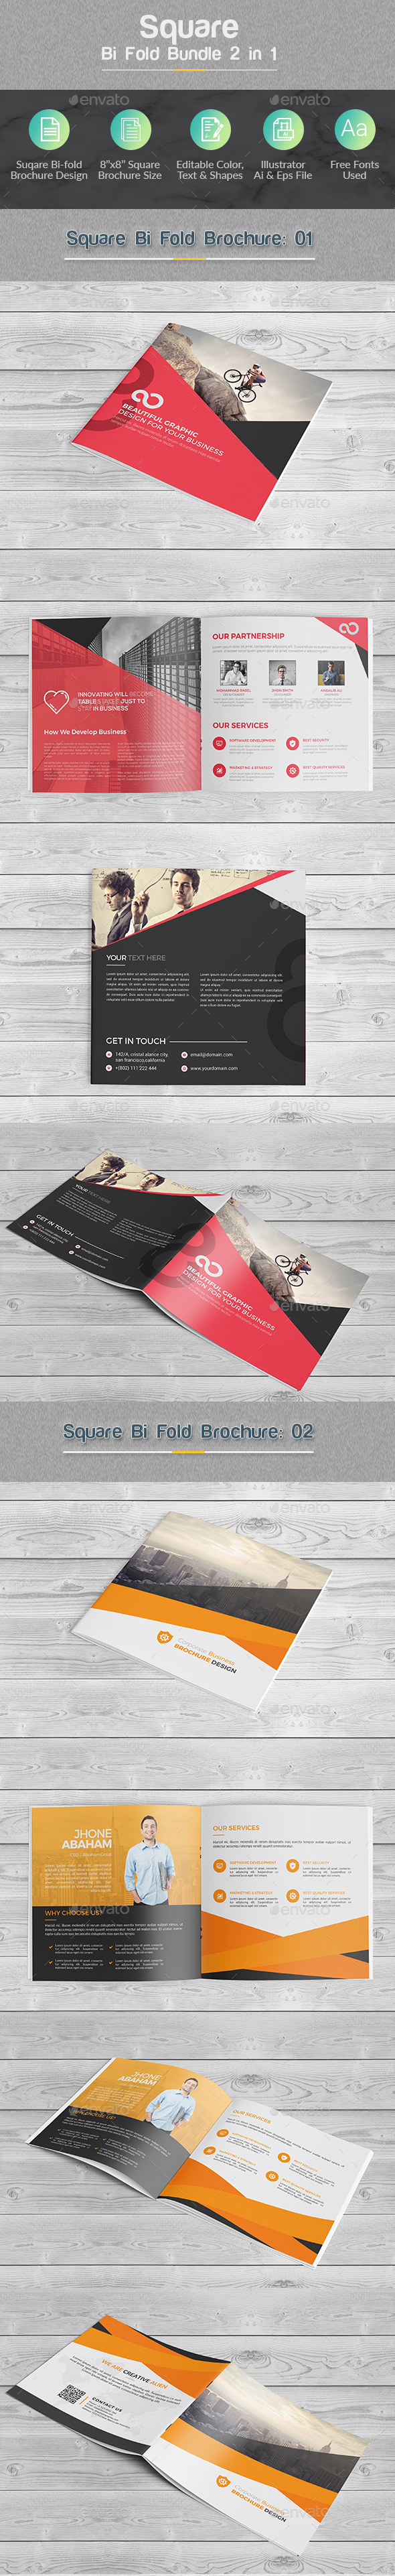 Square Bi-fold Brochure Bundle 2 in 1 - Corporate Brochures